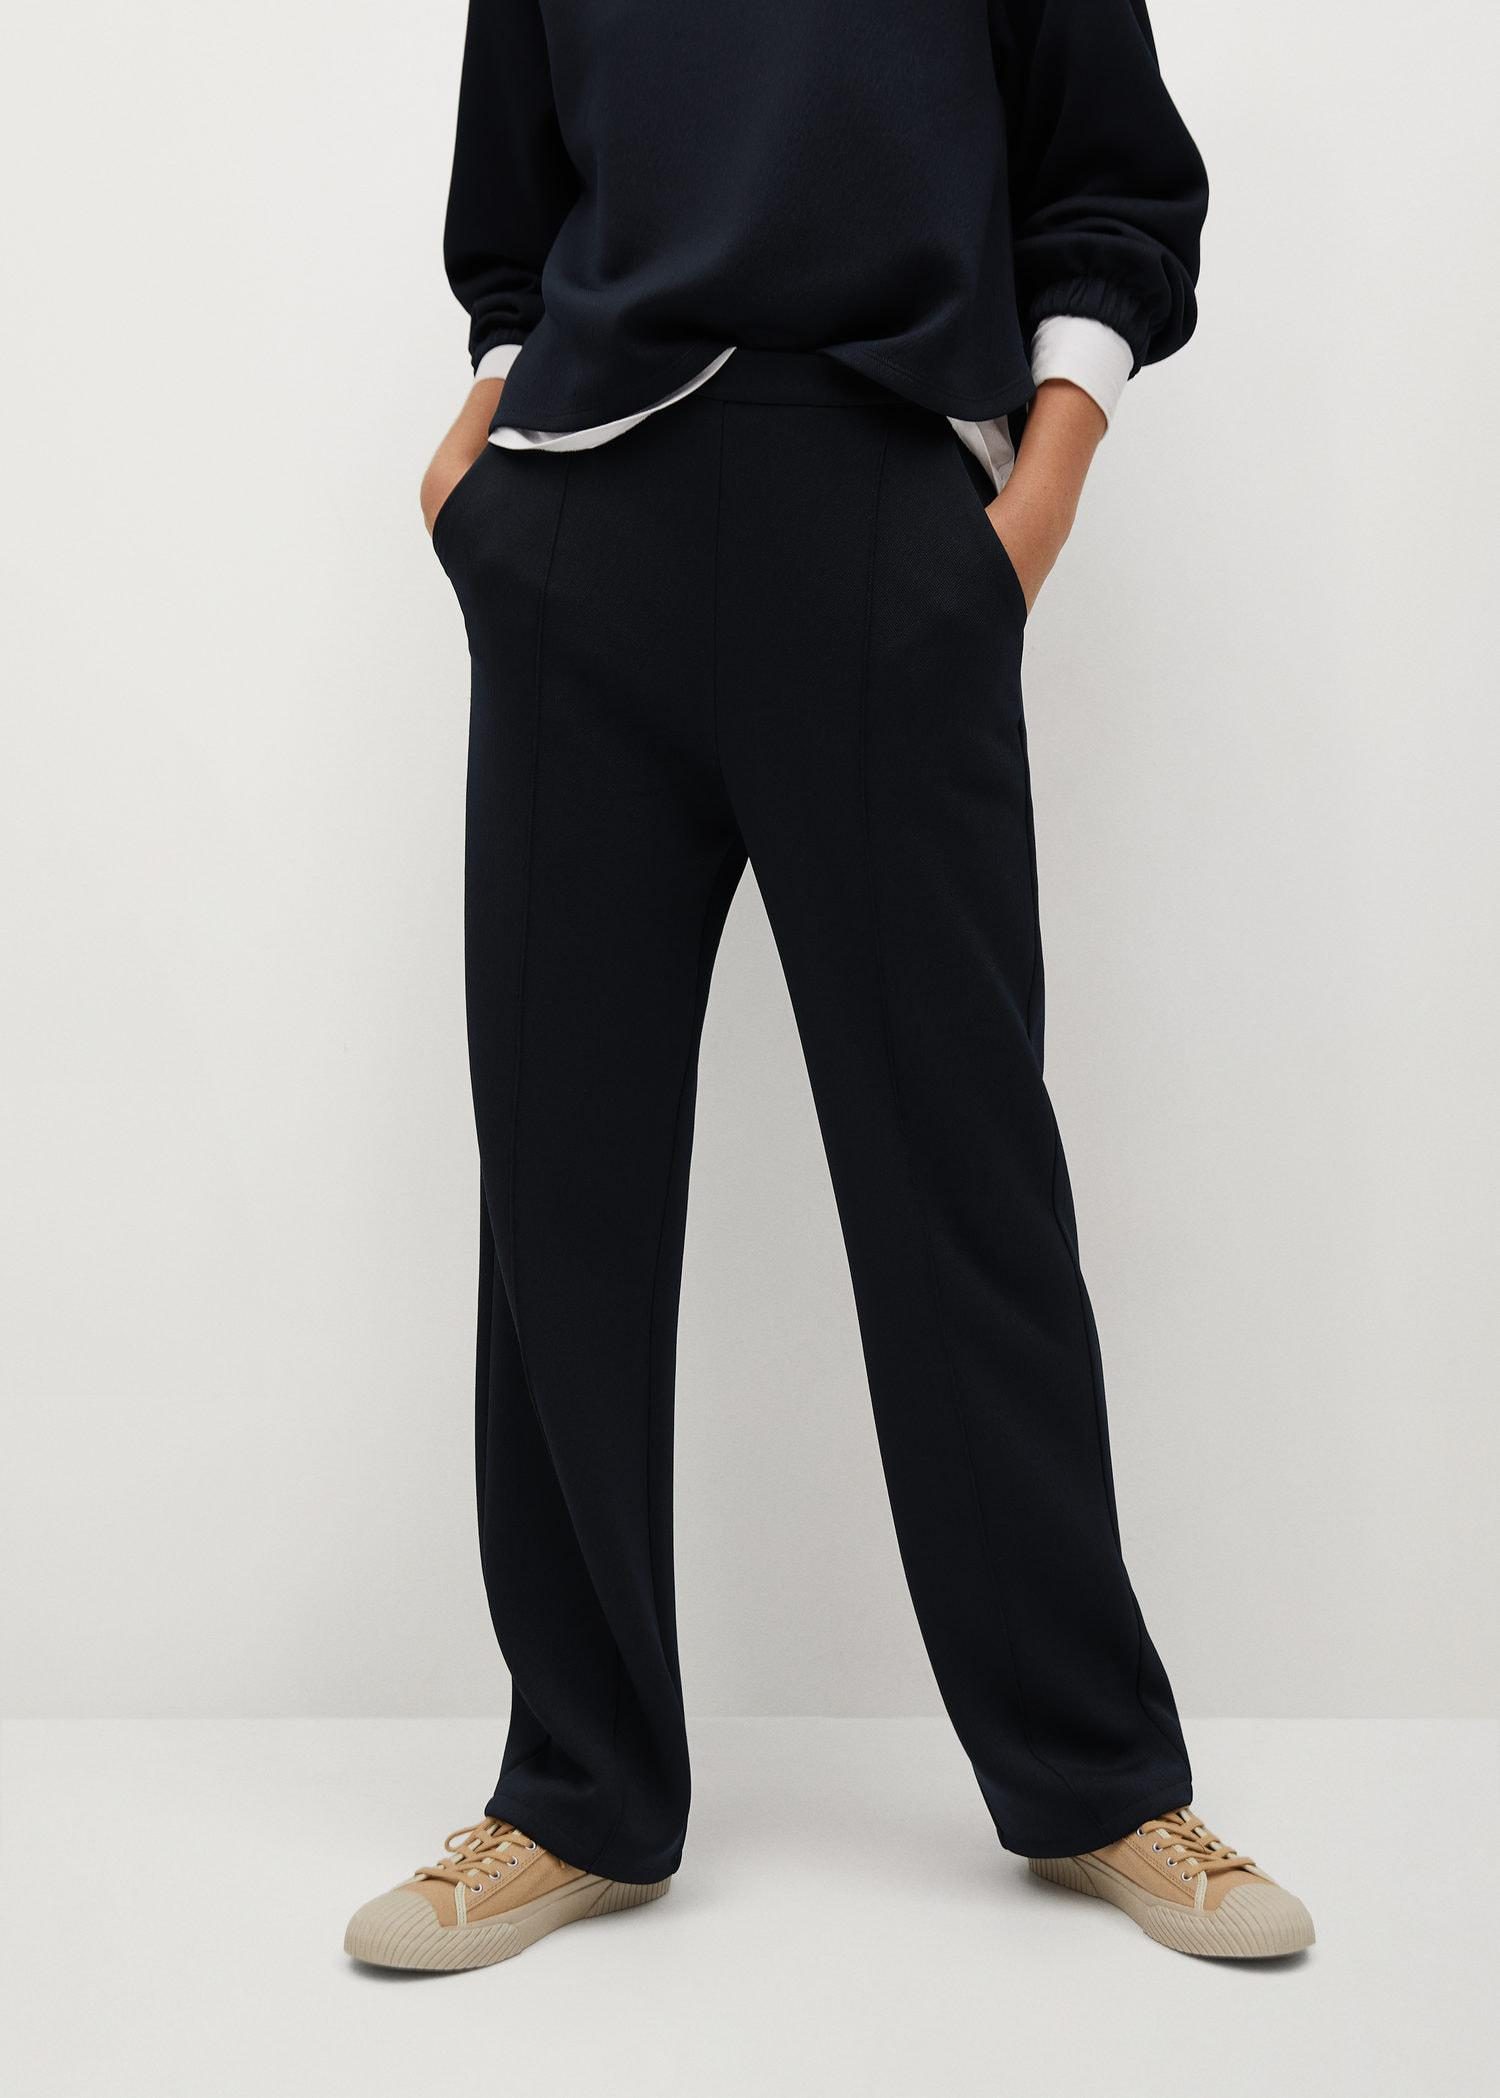 Pleat straight trousers